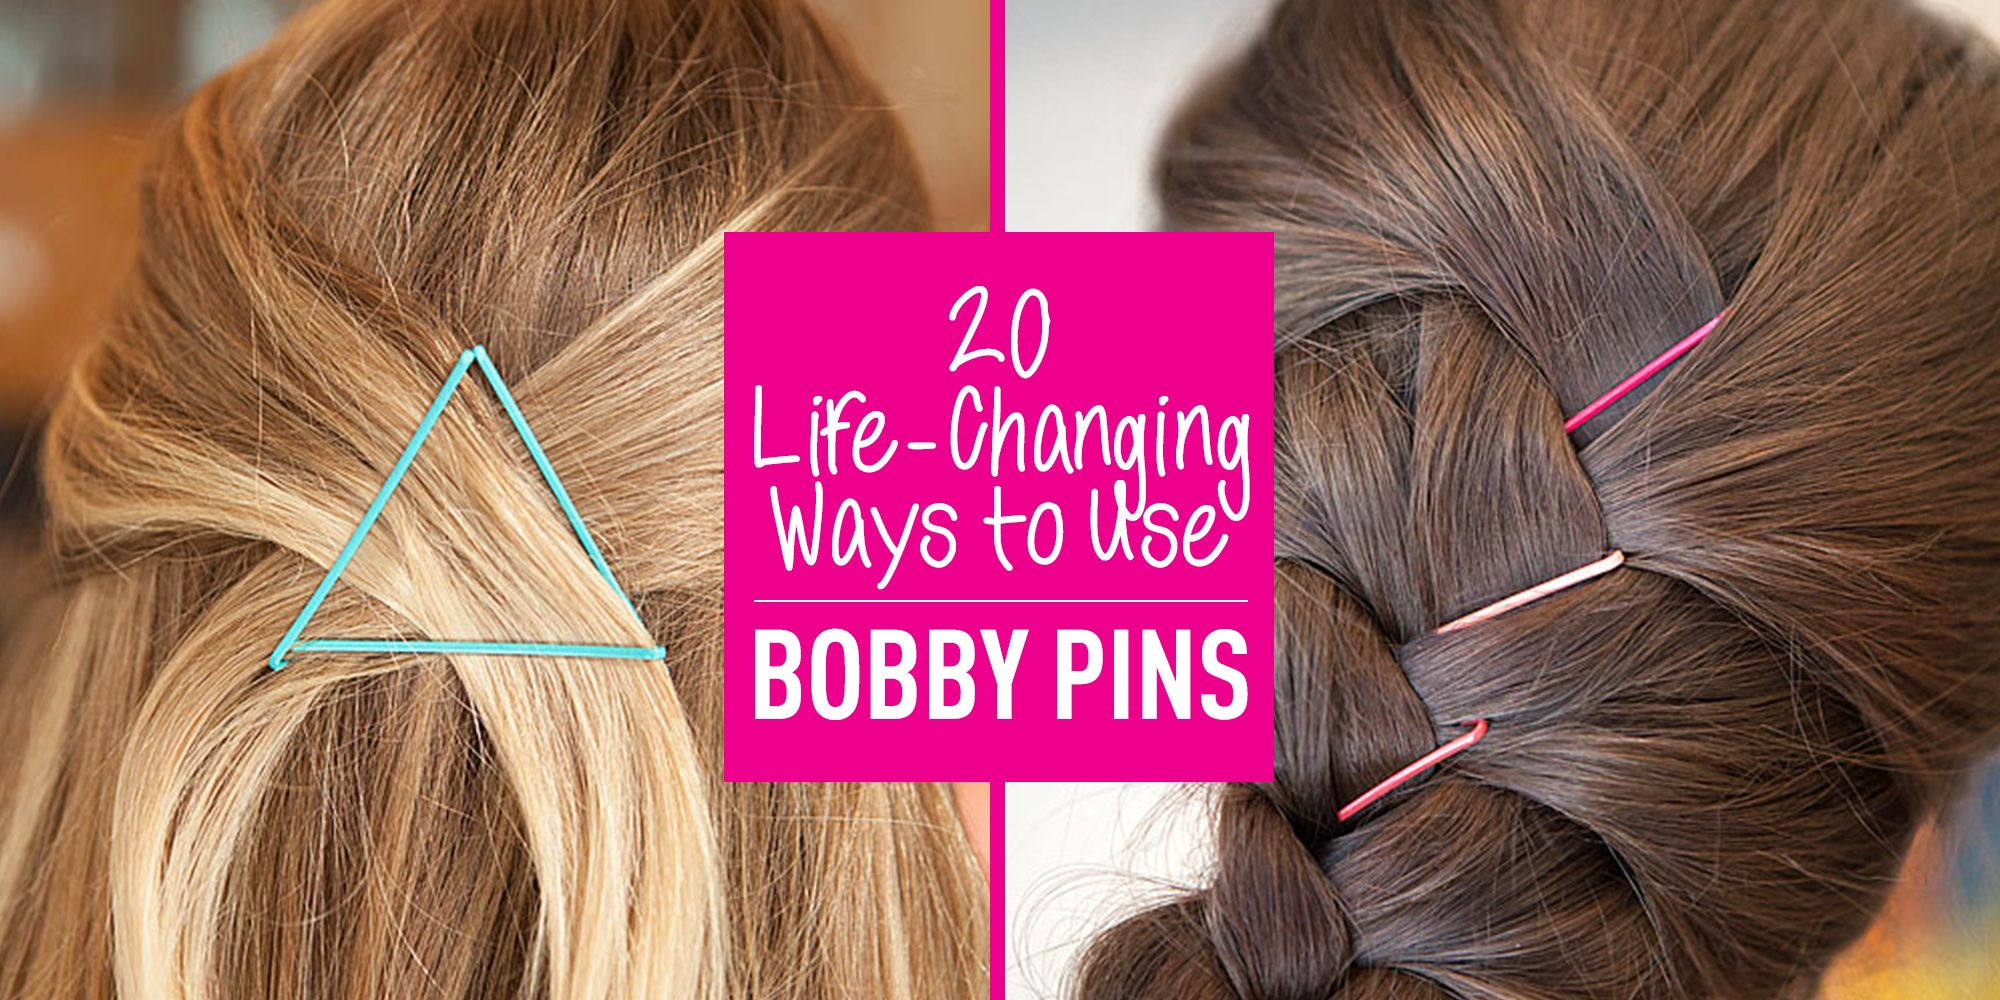 11 Life-Changing Ways to Use Bobby Pins